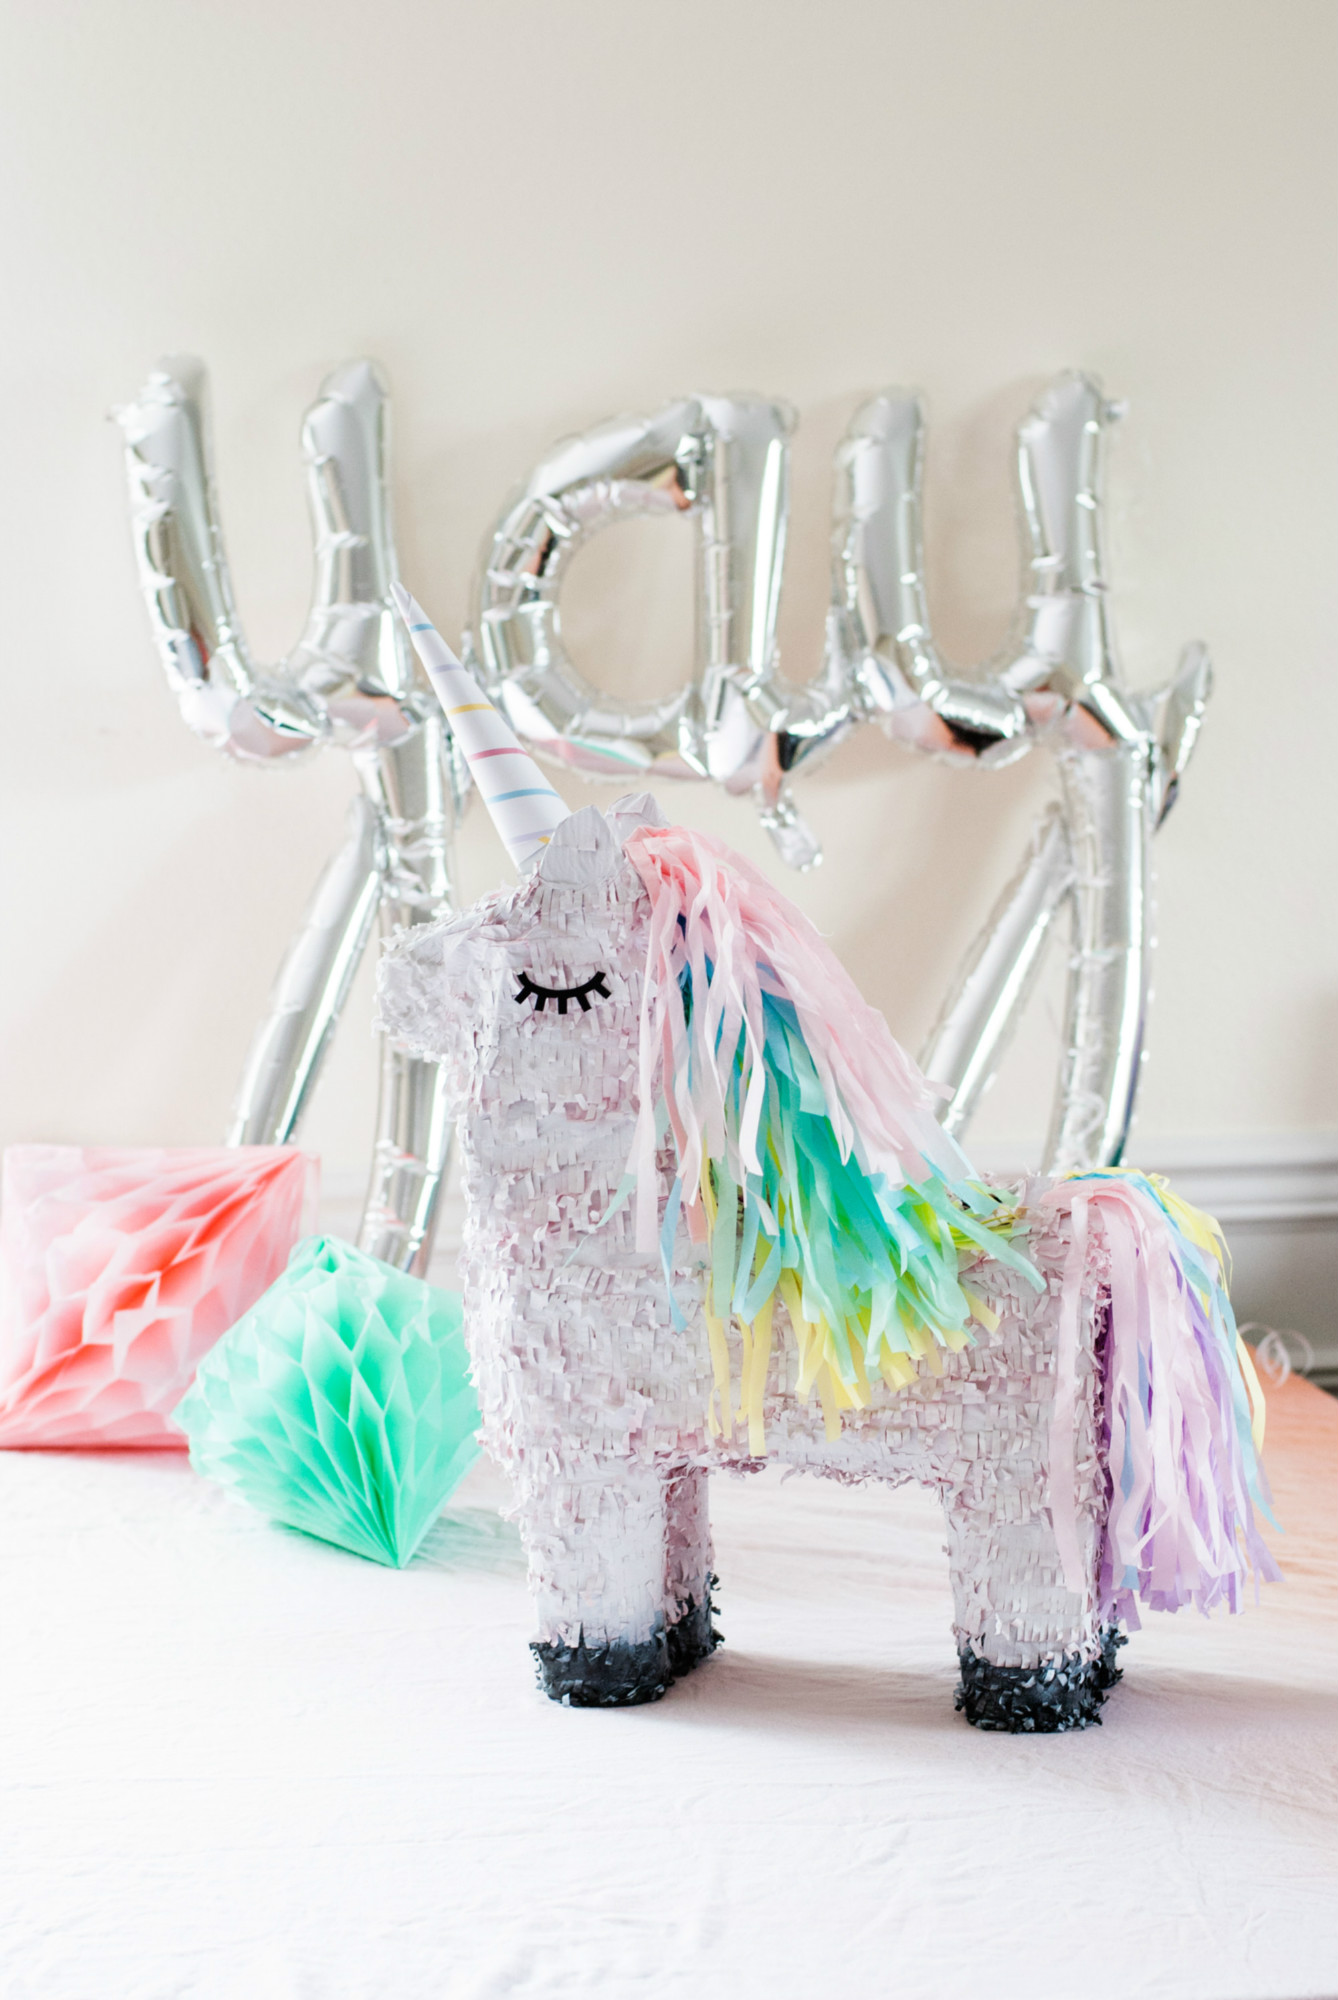 Yay Balloon and Unicorn Pinata from Magical Unicorn Party Dessert Table | Black Twine | Itsy Belle Studio